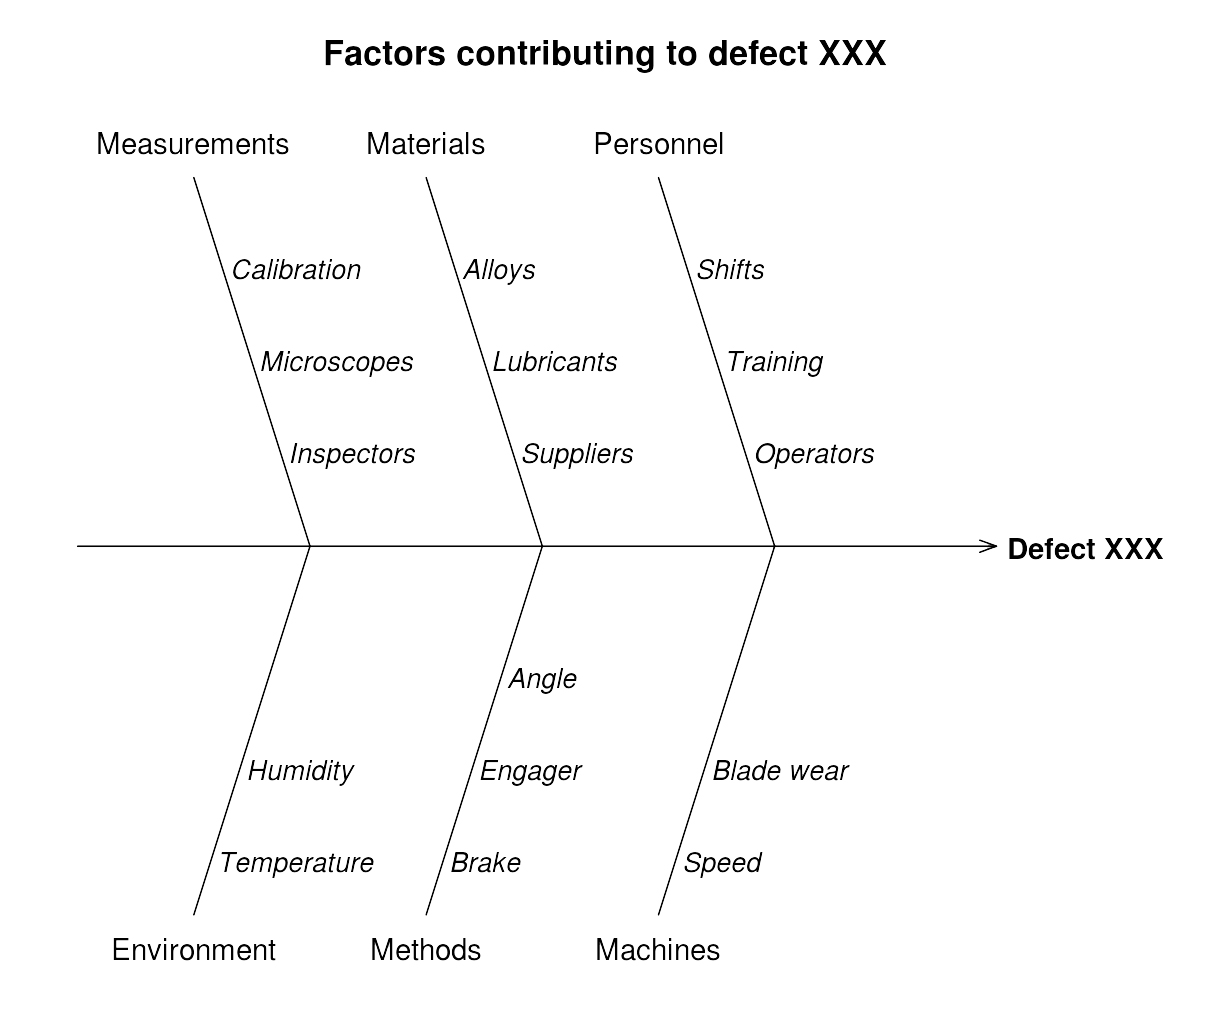 Ishikawa Diagram showing the factors that contribute to defect XXX. There is a horizontal arrow in the middle of the diagram pointing toward Defect XXX. There are three diagonal lines on either side of the arrow indicating factors. The first line includes the measurement factors, and has three subfactors: calibration, microscopes, and inspectors. The second line includes the materials factors, and has three subfactors: alloys, lubricants, and suppliers. The third line includes the personnel factors, and has three subfactors: shifts, training, and operators. The fourth line includes the environmental factors, and has two subfactors: humidity and temperature. The fifth line includes the methods factors, and has three subfactors: angle, engager, and brake. The sixth line includes the machine factors, and has two subfactors: blade wear and speed.